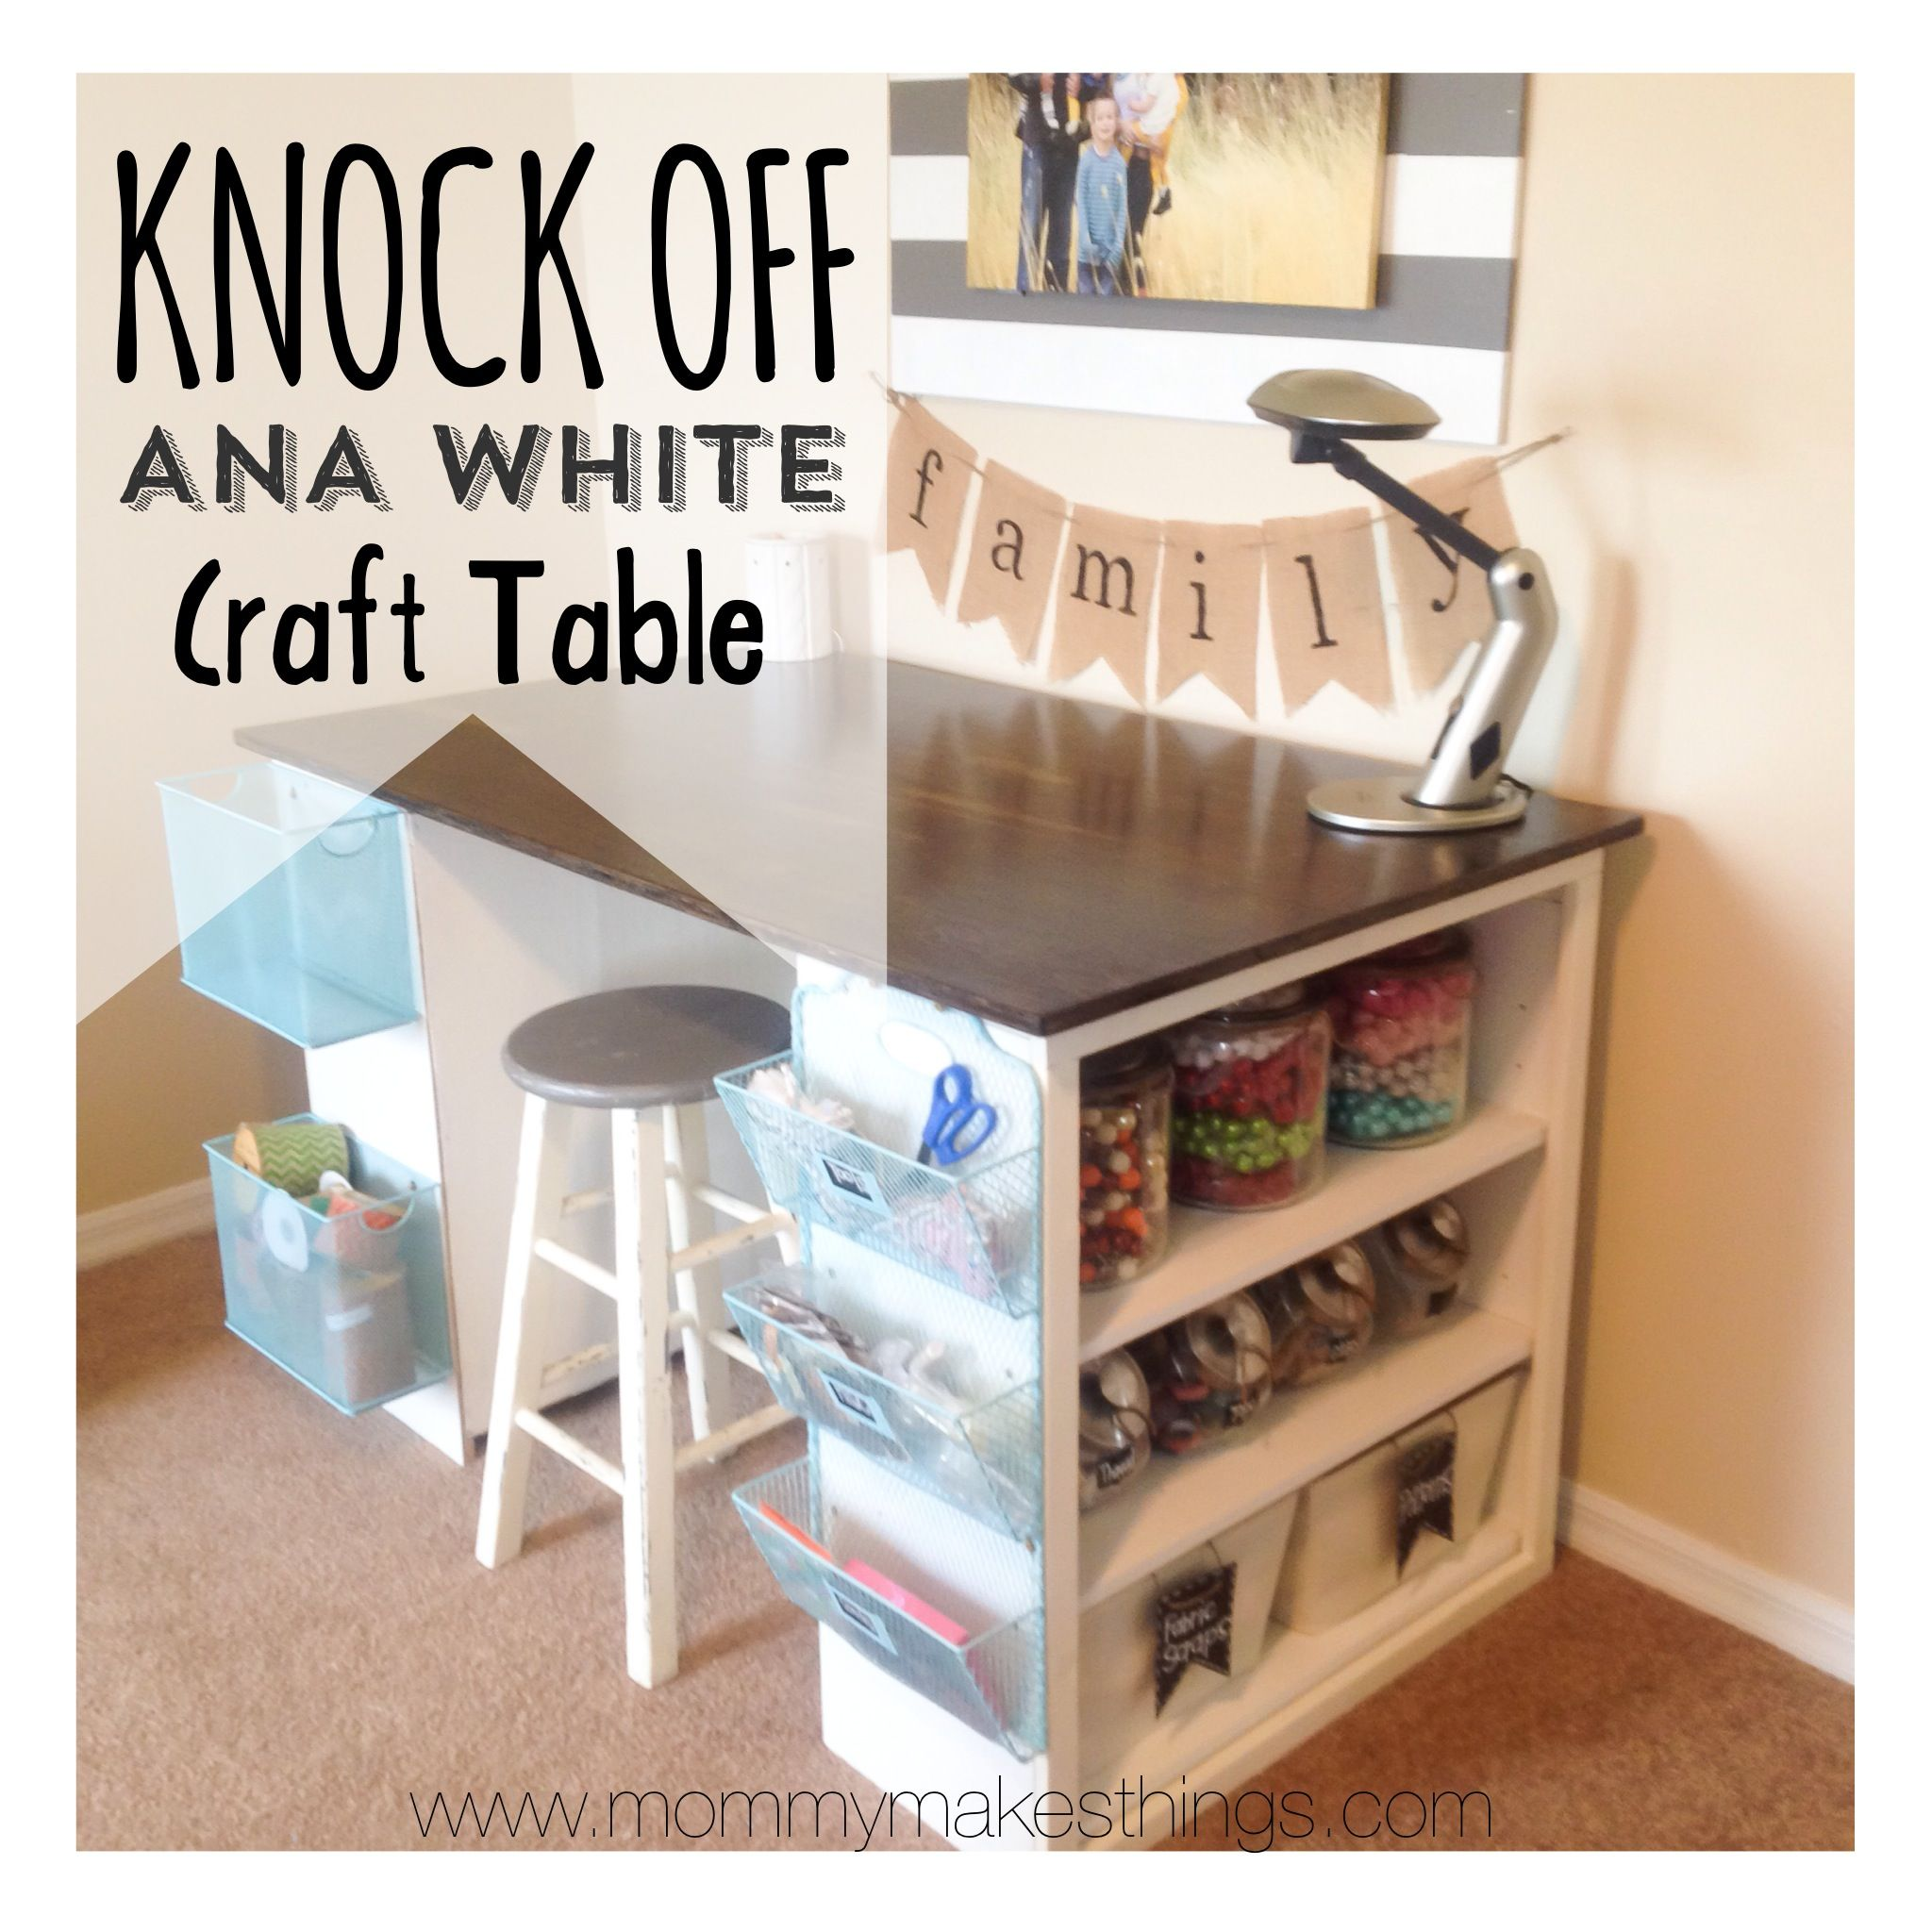 Diy ana white craft table knock off for under by mommy makes